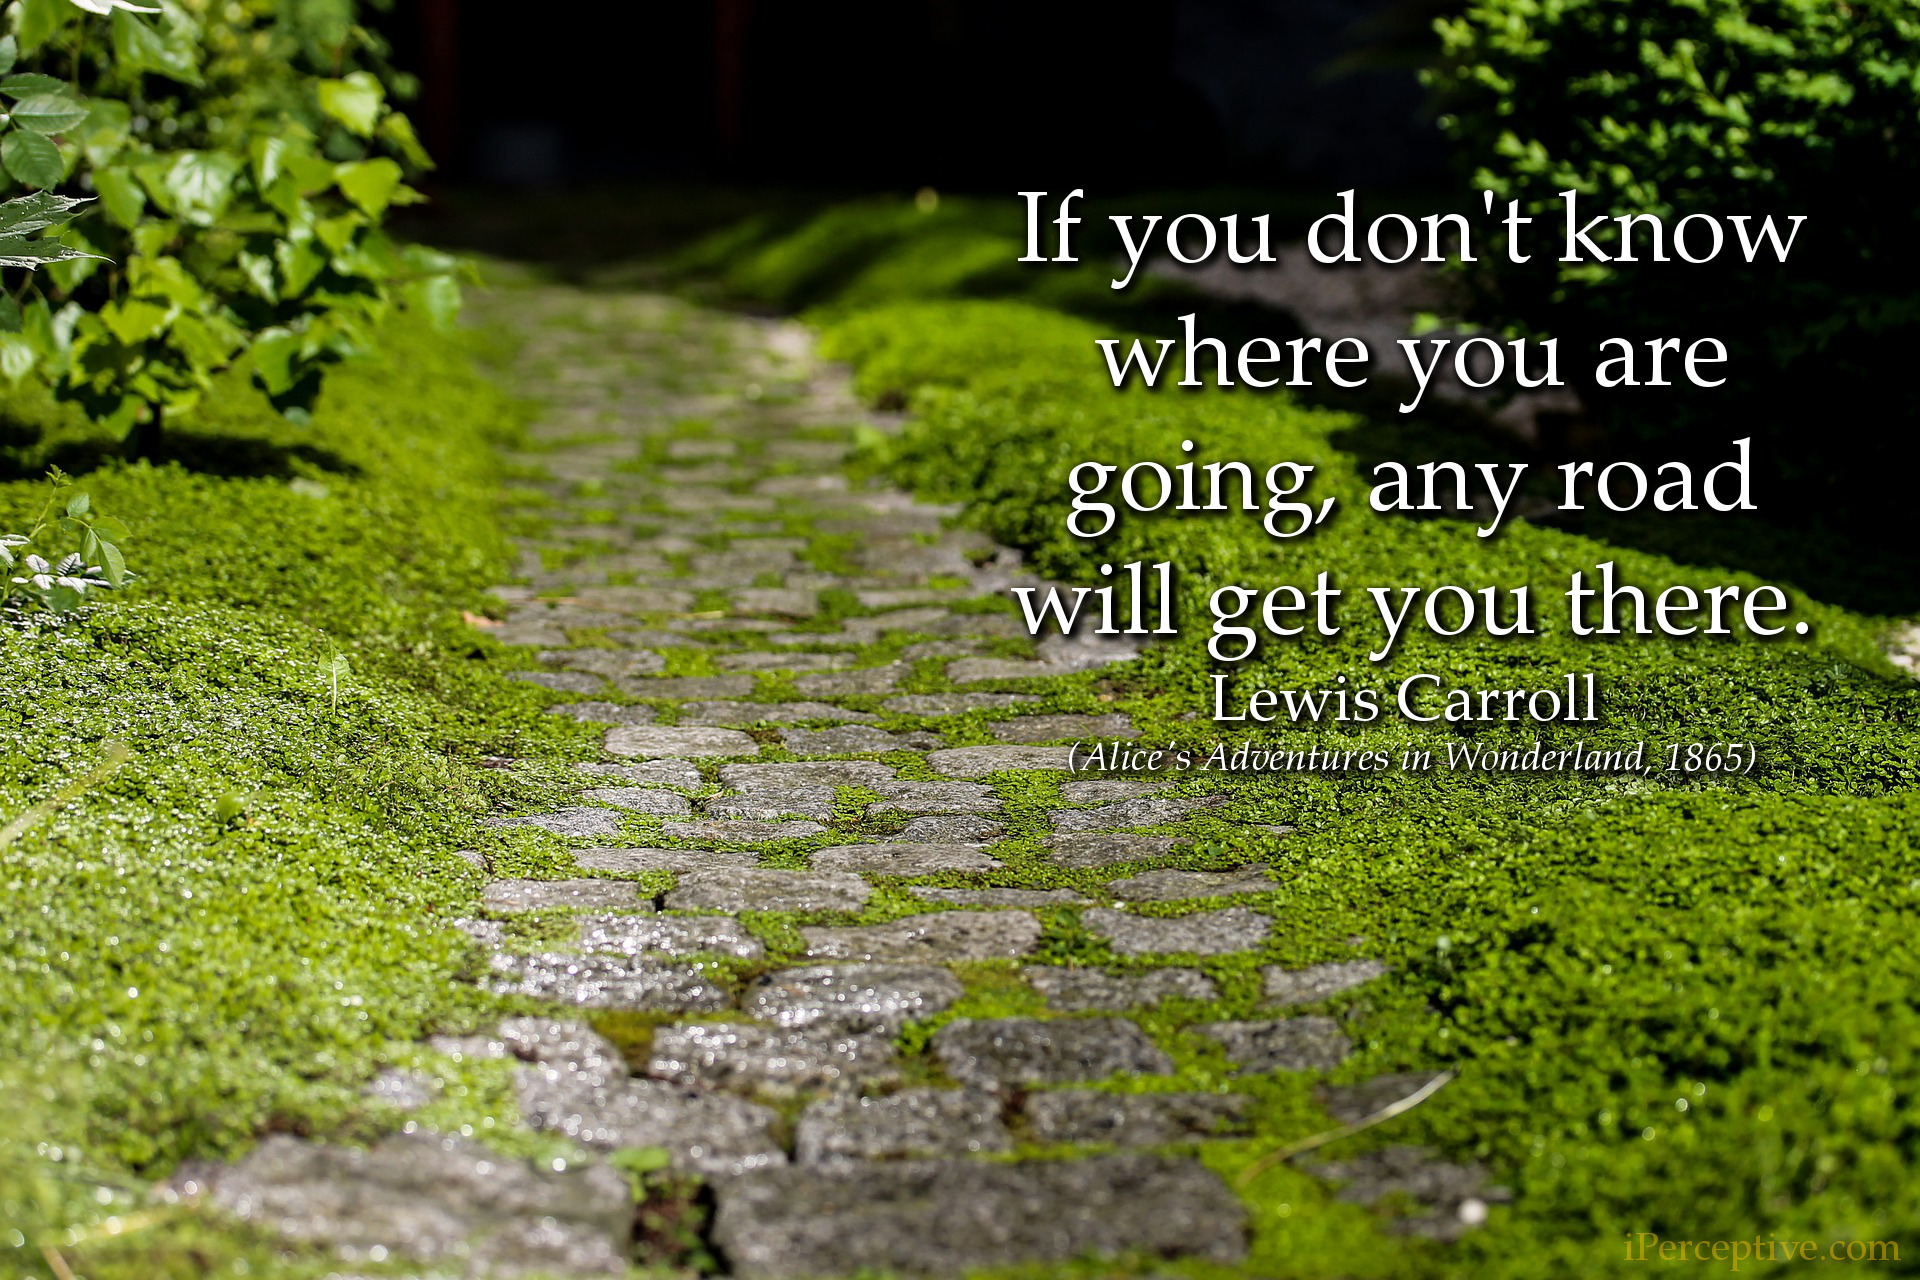 Lewis Carroll Quote: If you don't know where you are going, any road will...